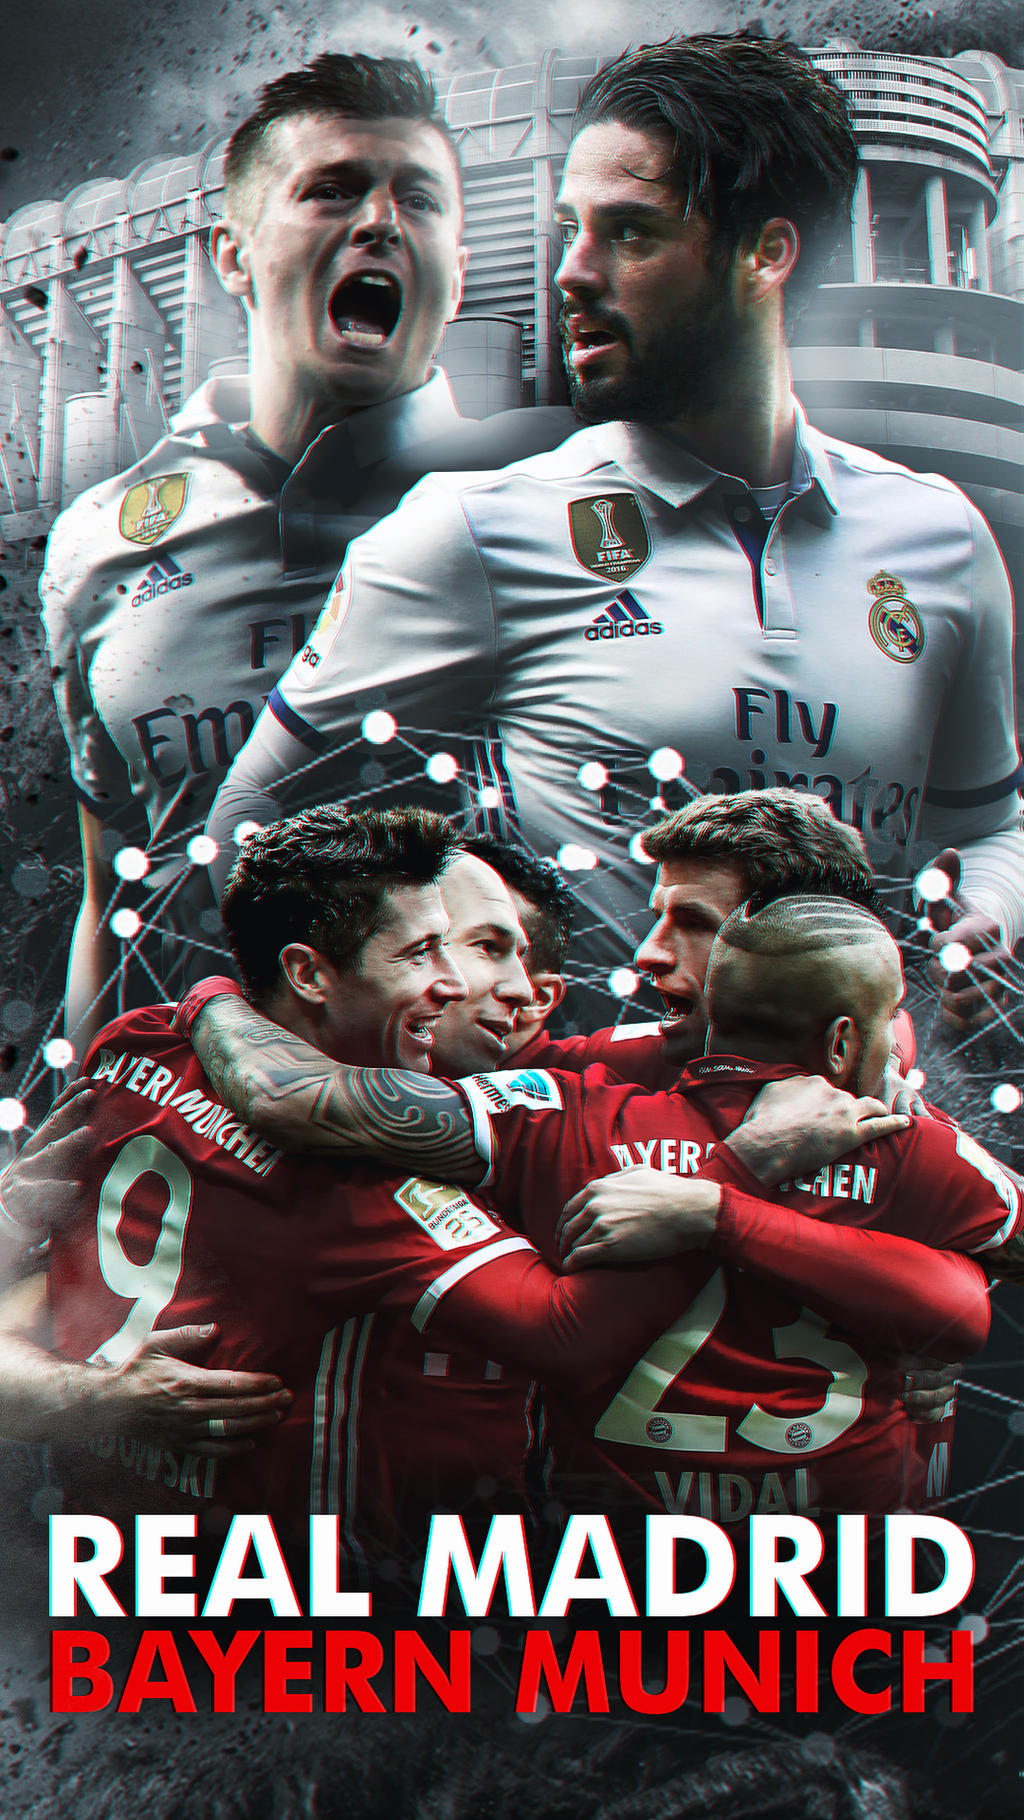 FCB Mia San HD Wallpaper Iconvostroog VostroOG 5 0 Real Madrid